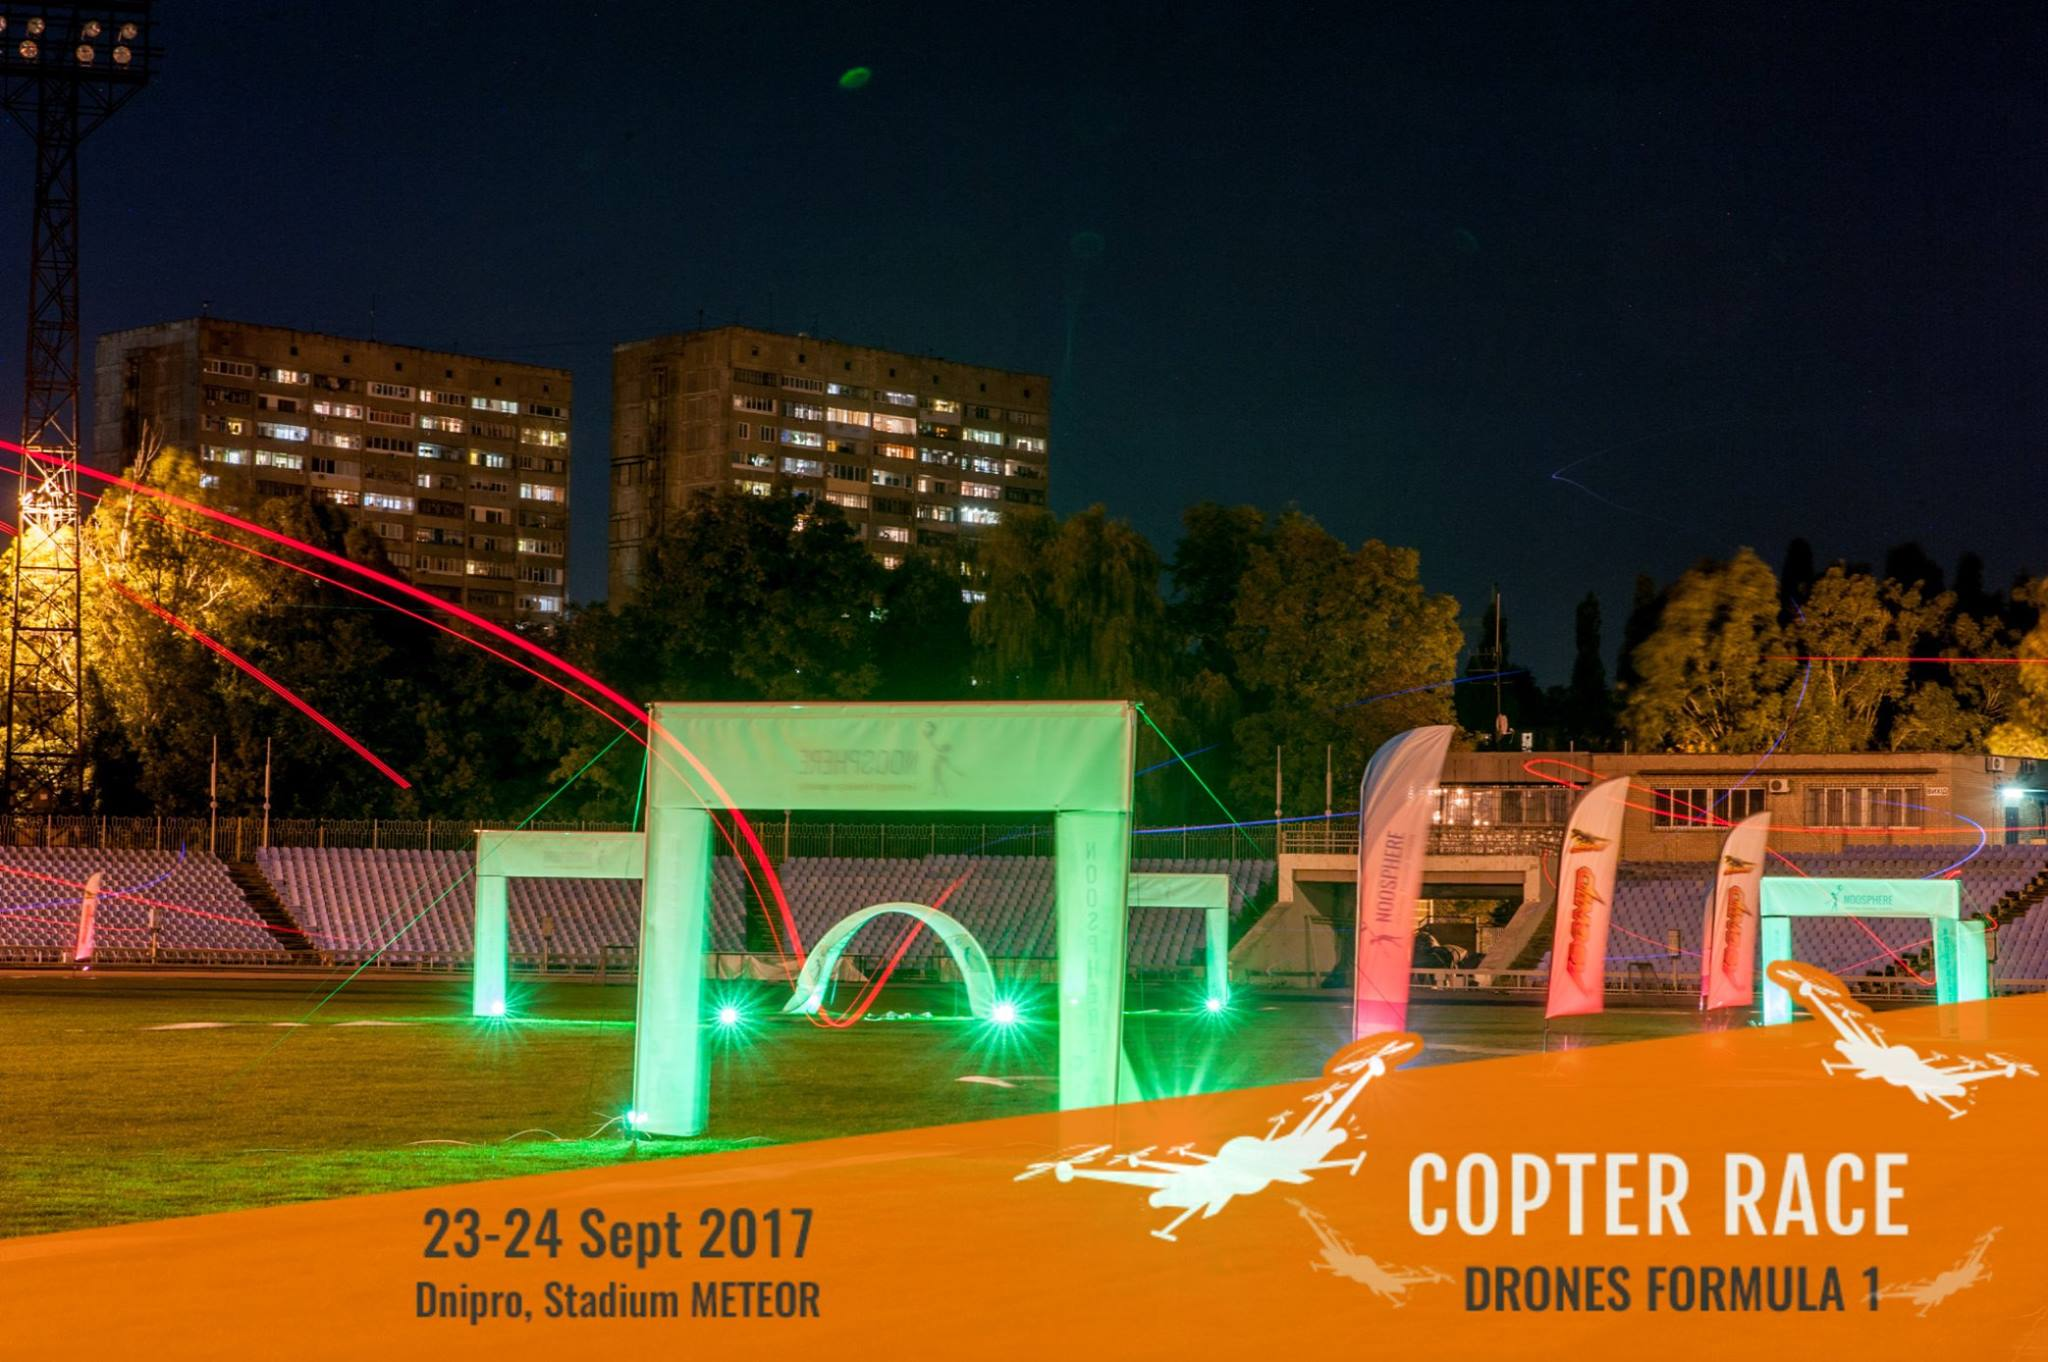 FAI World Cup stage in drone racing 2017